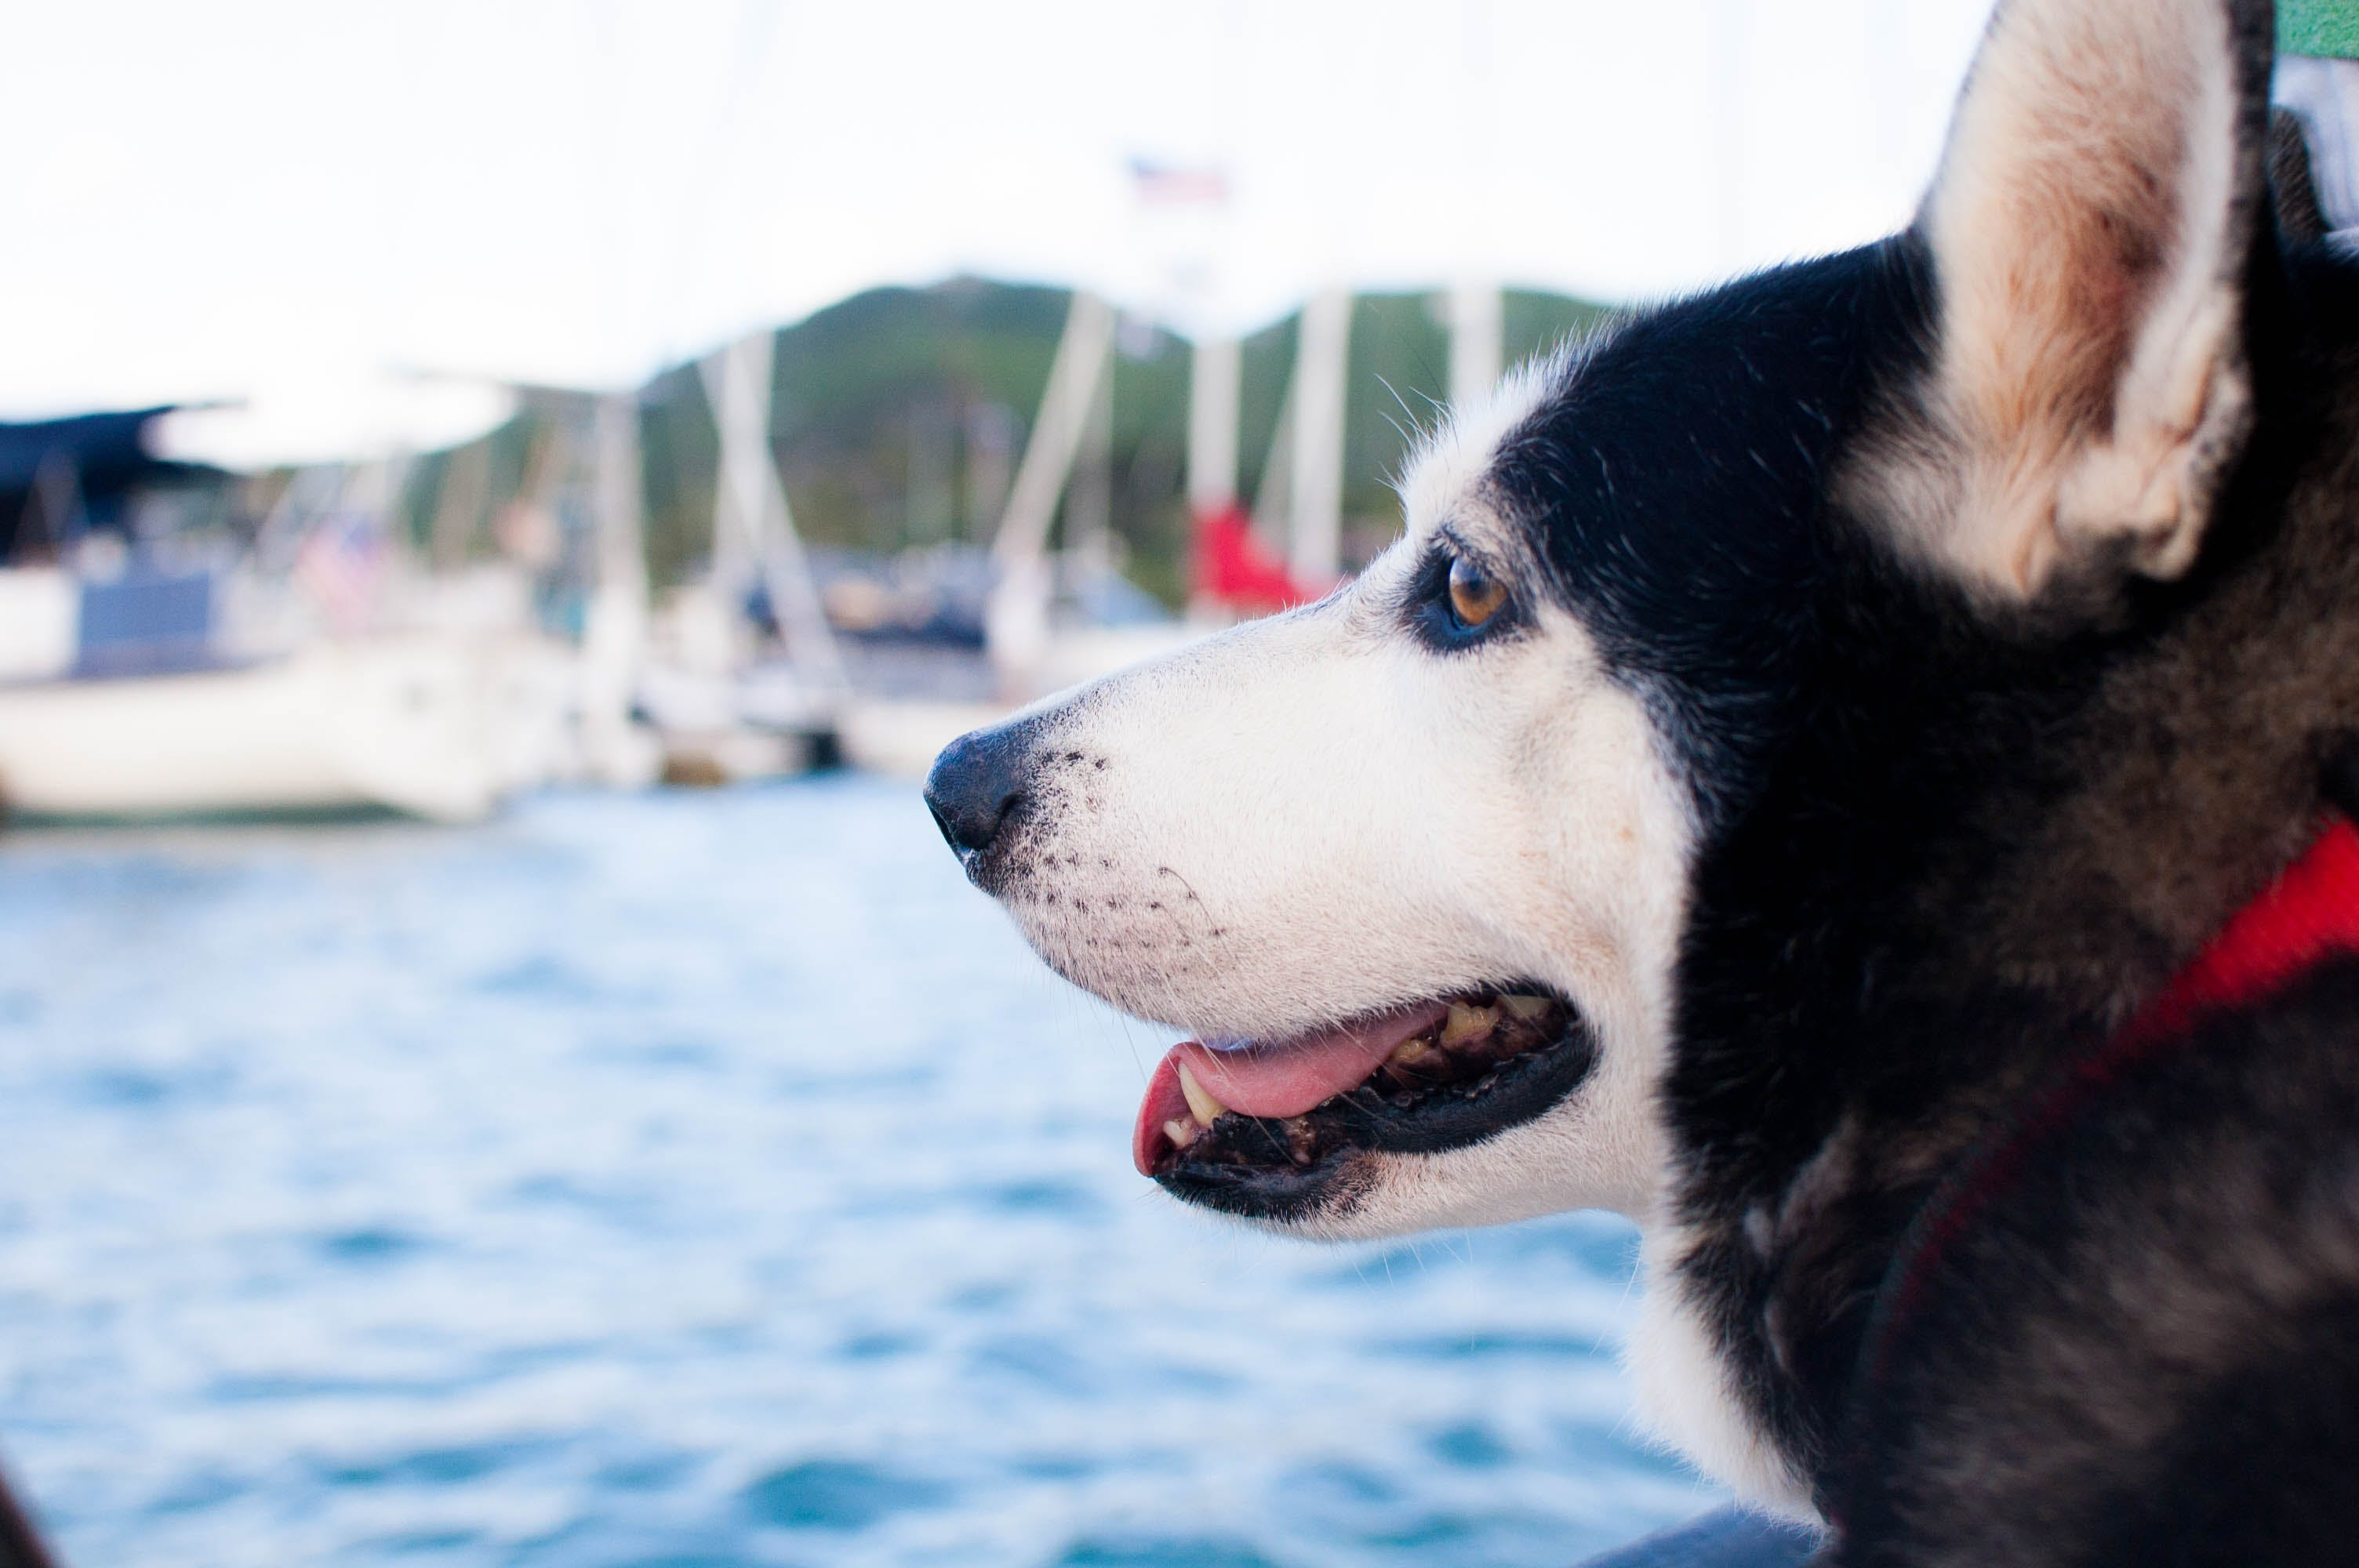 Siberian Husky Near Ocean at Daytime